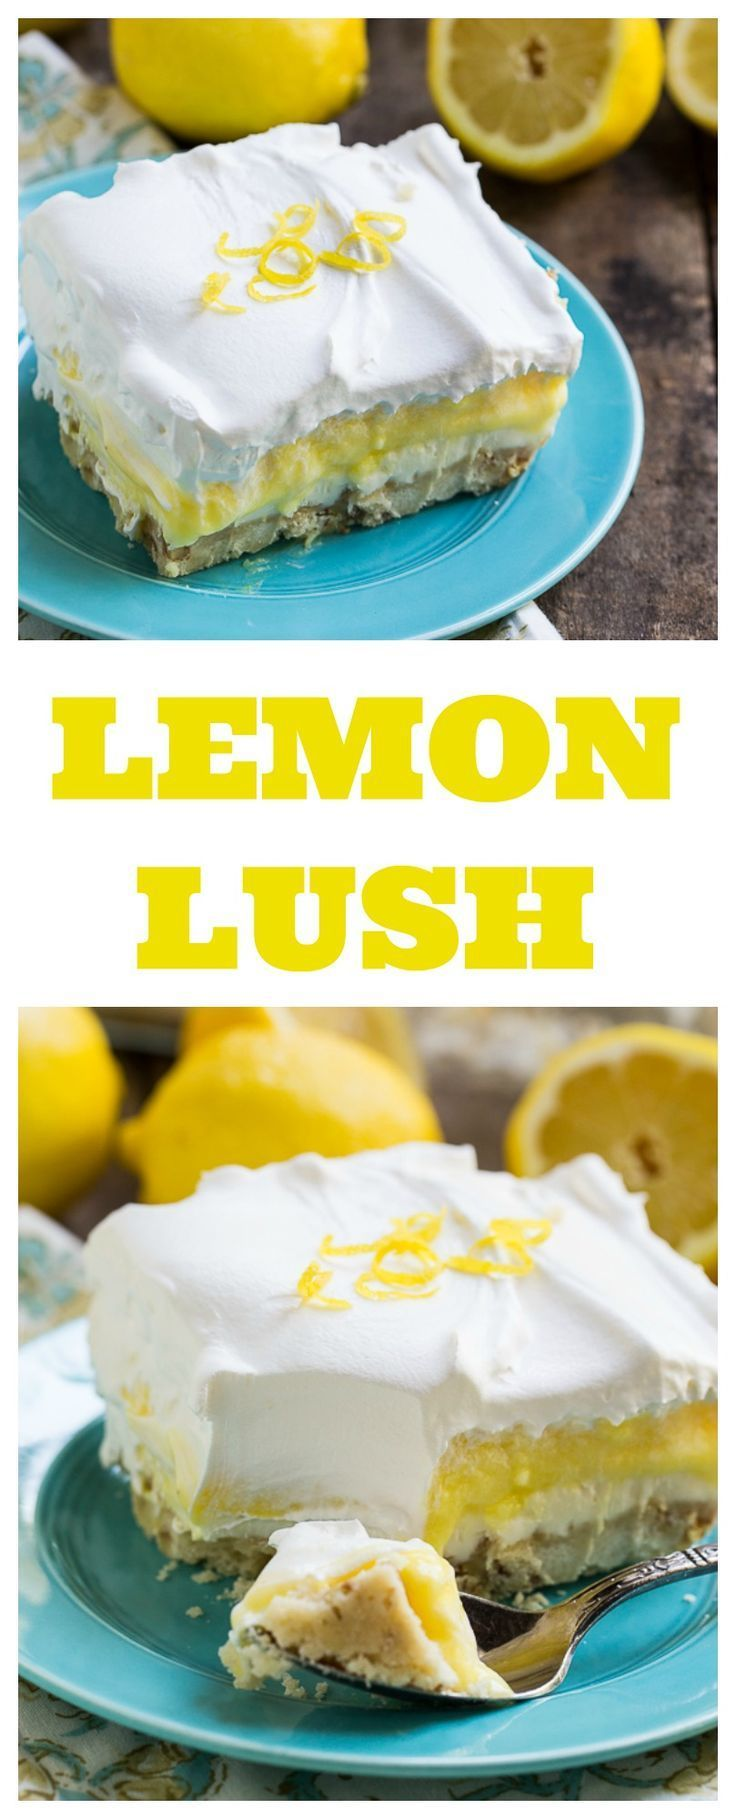 Lemon Lush - 4 delicious layers in this cool and creamy dessert.